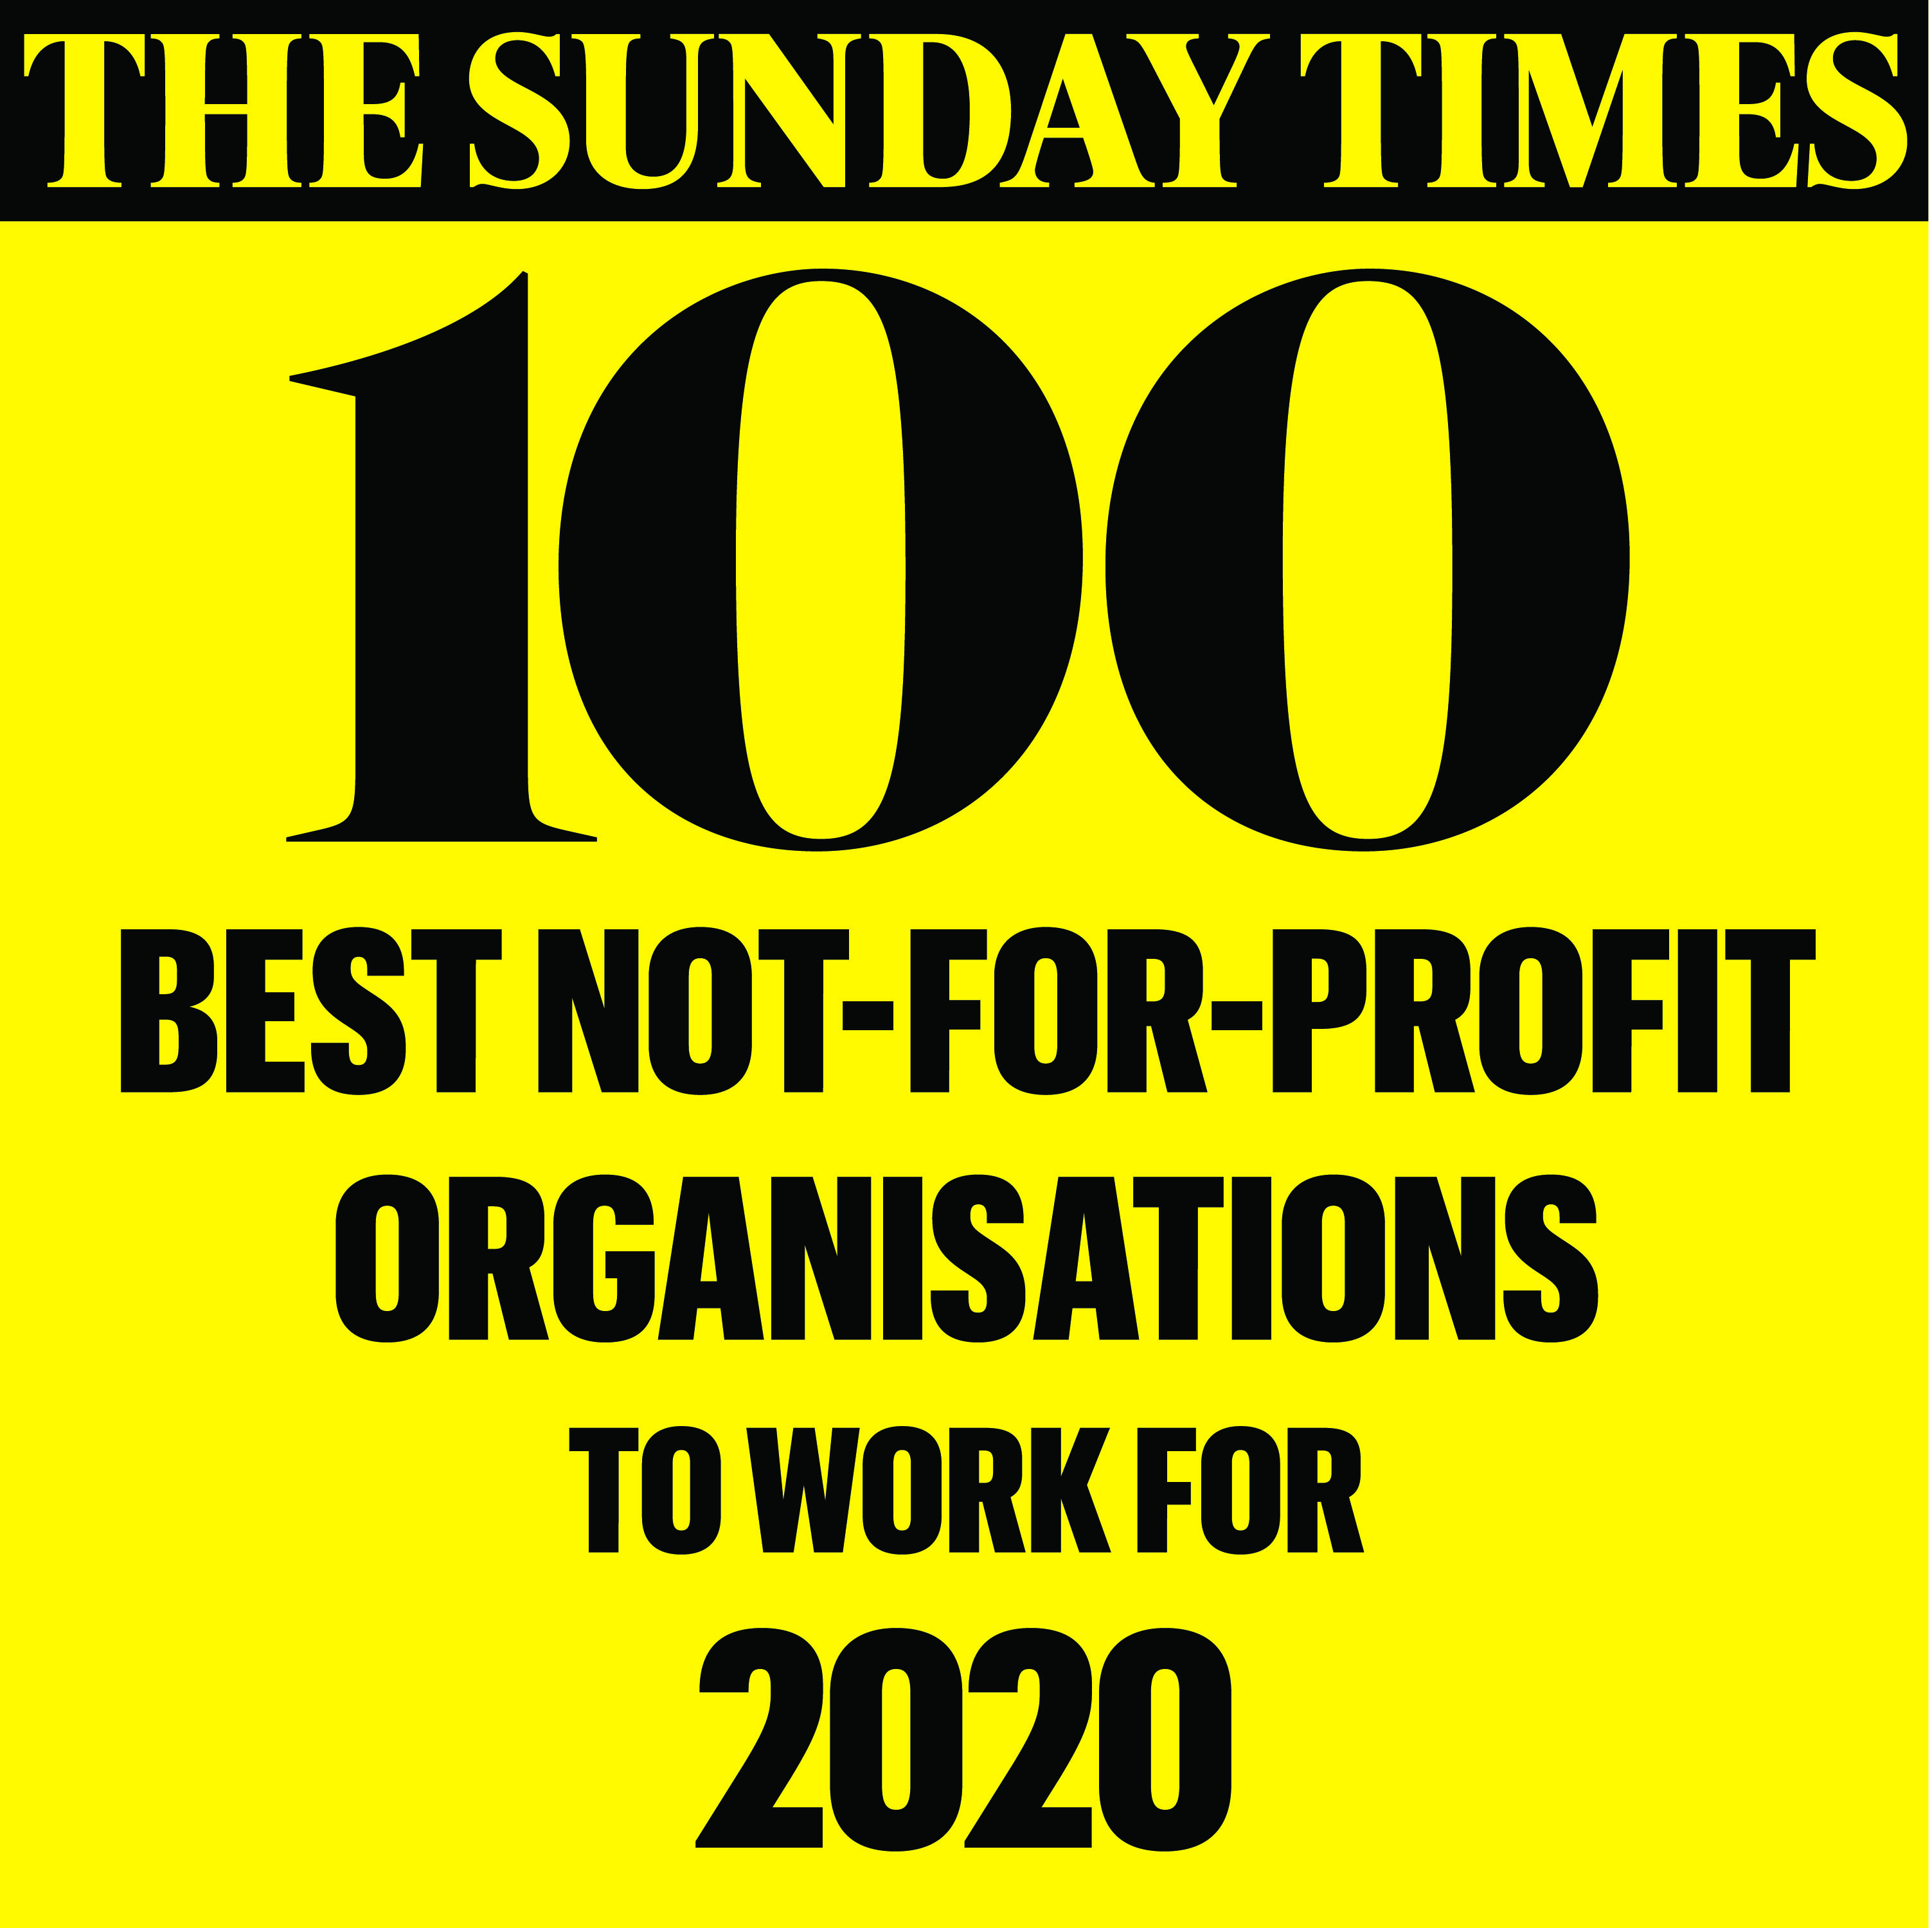 Logo for The Sunday Times 100 Best Not for Profit Organisations to work for in 2020